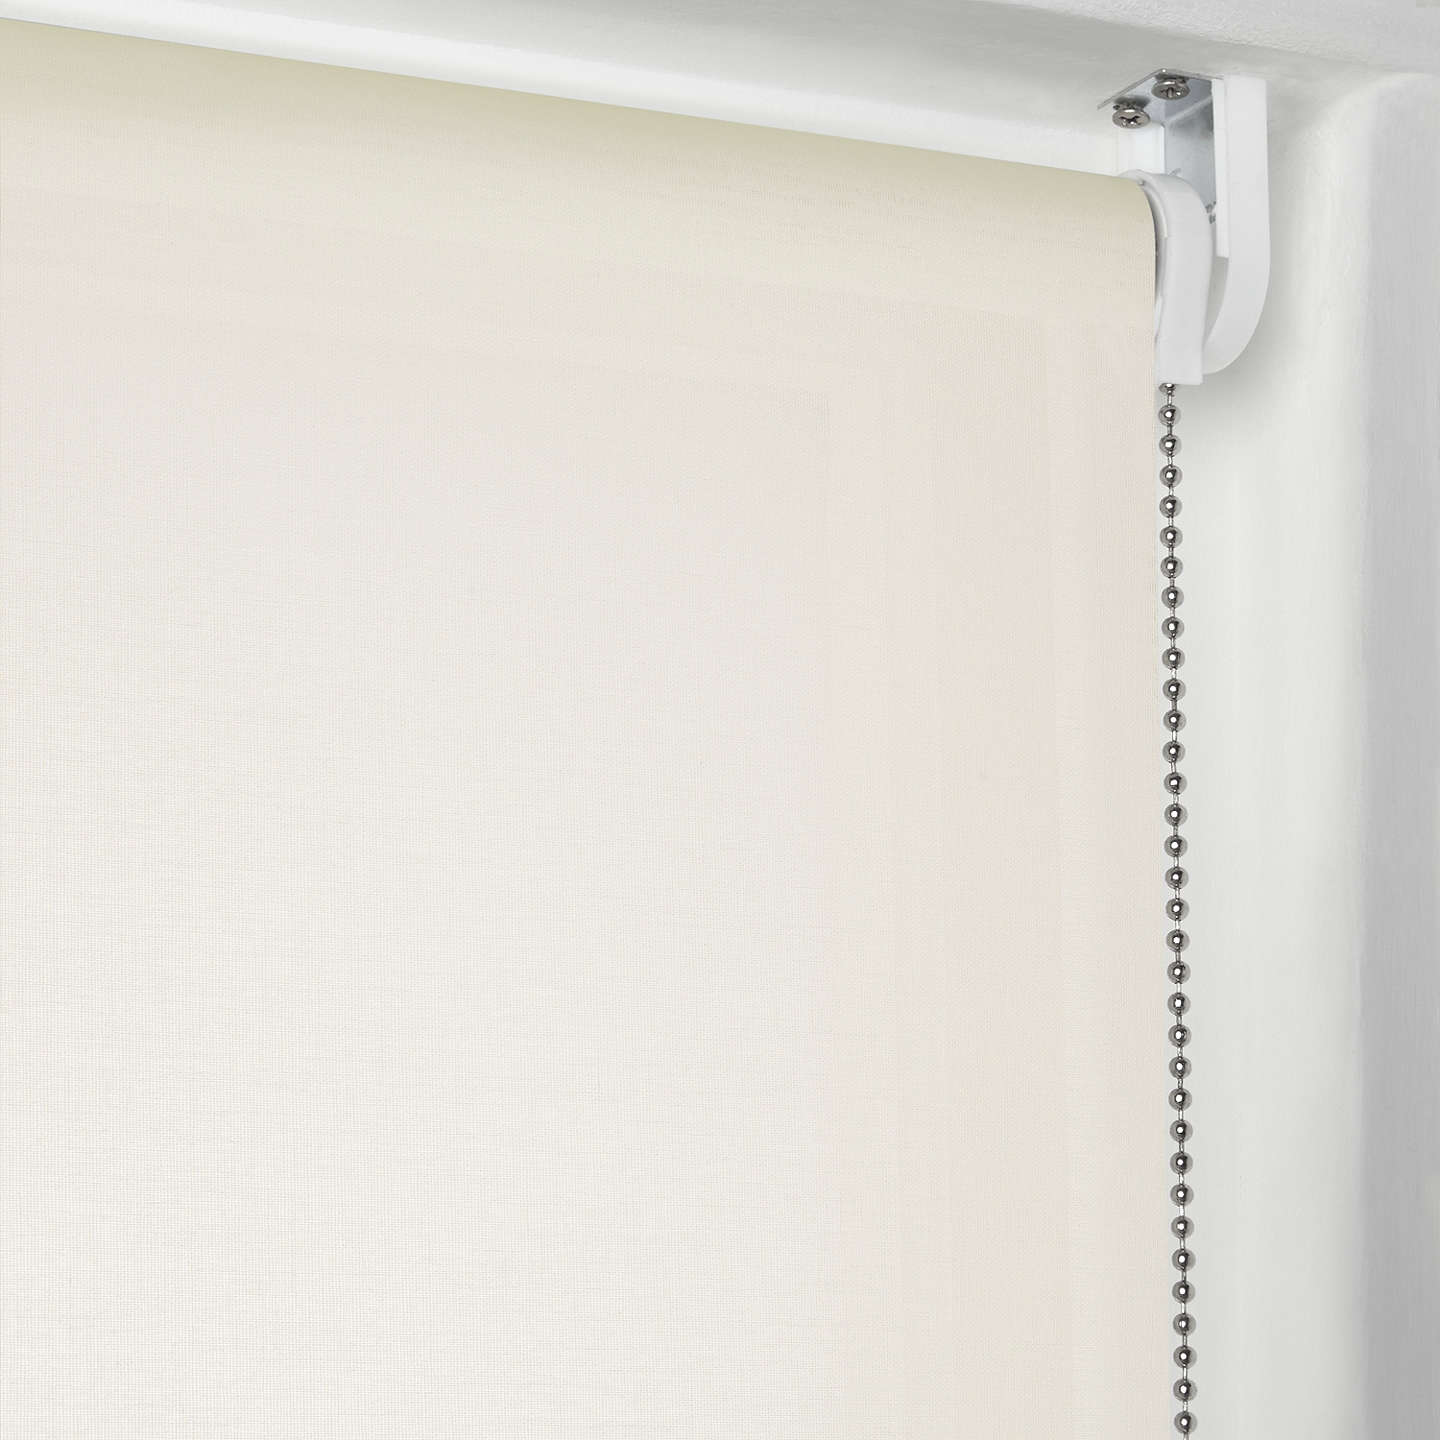 BuyJohn Lewis Sheer Roller Blind, Cream, W100cm Online at johnlewis.com